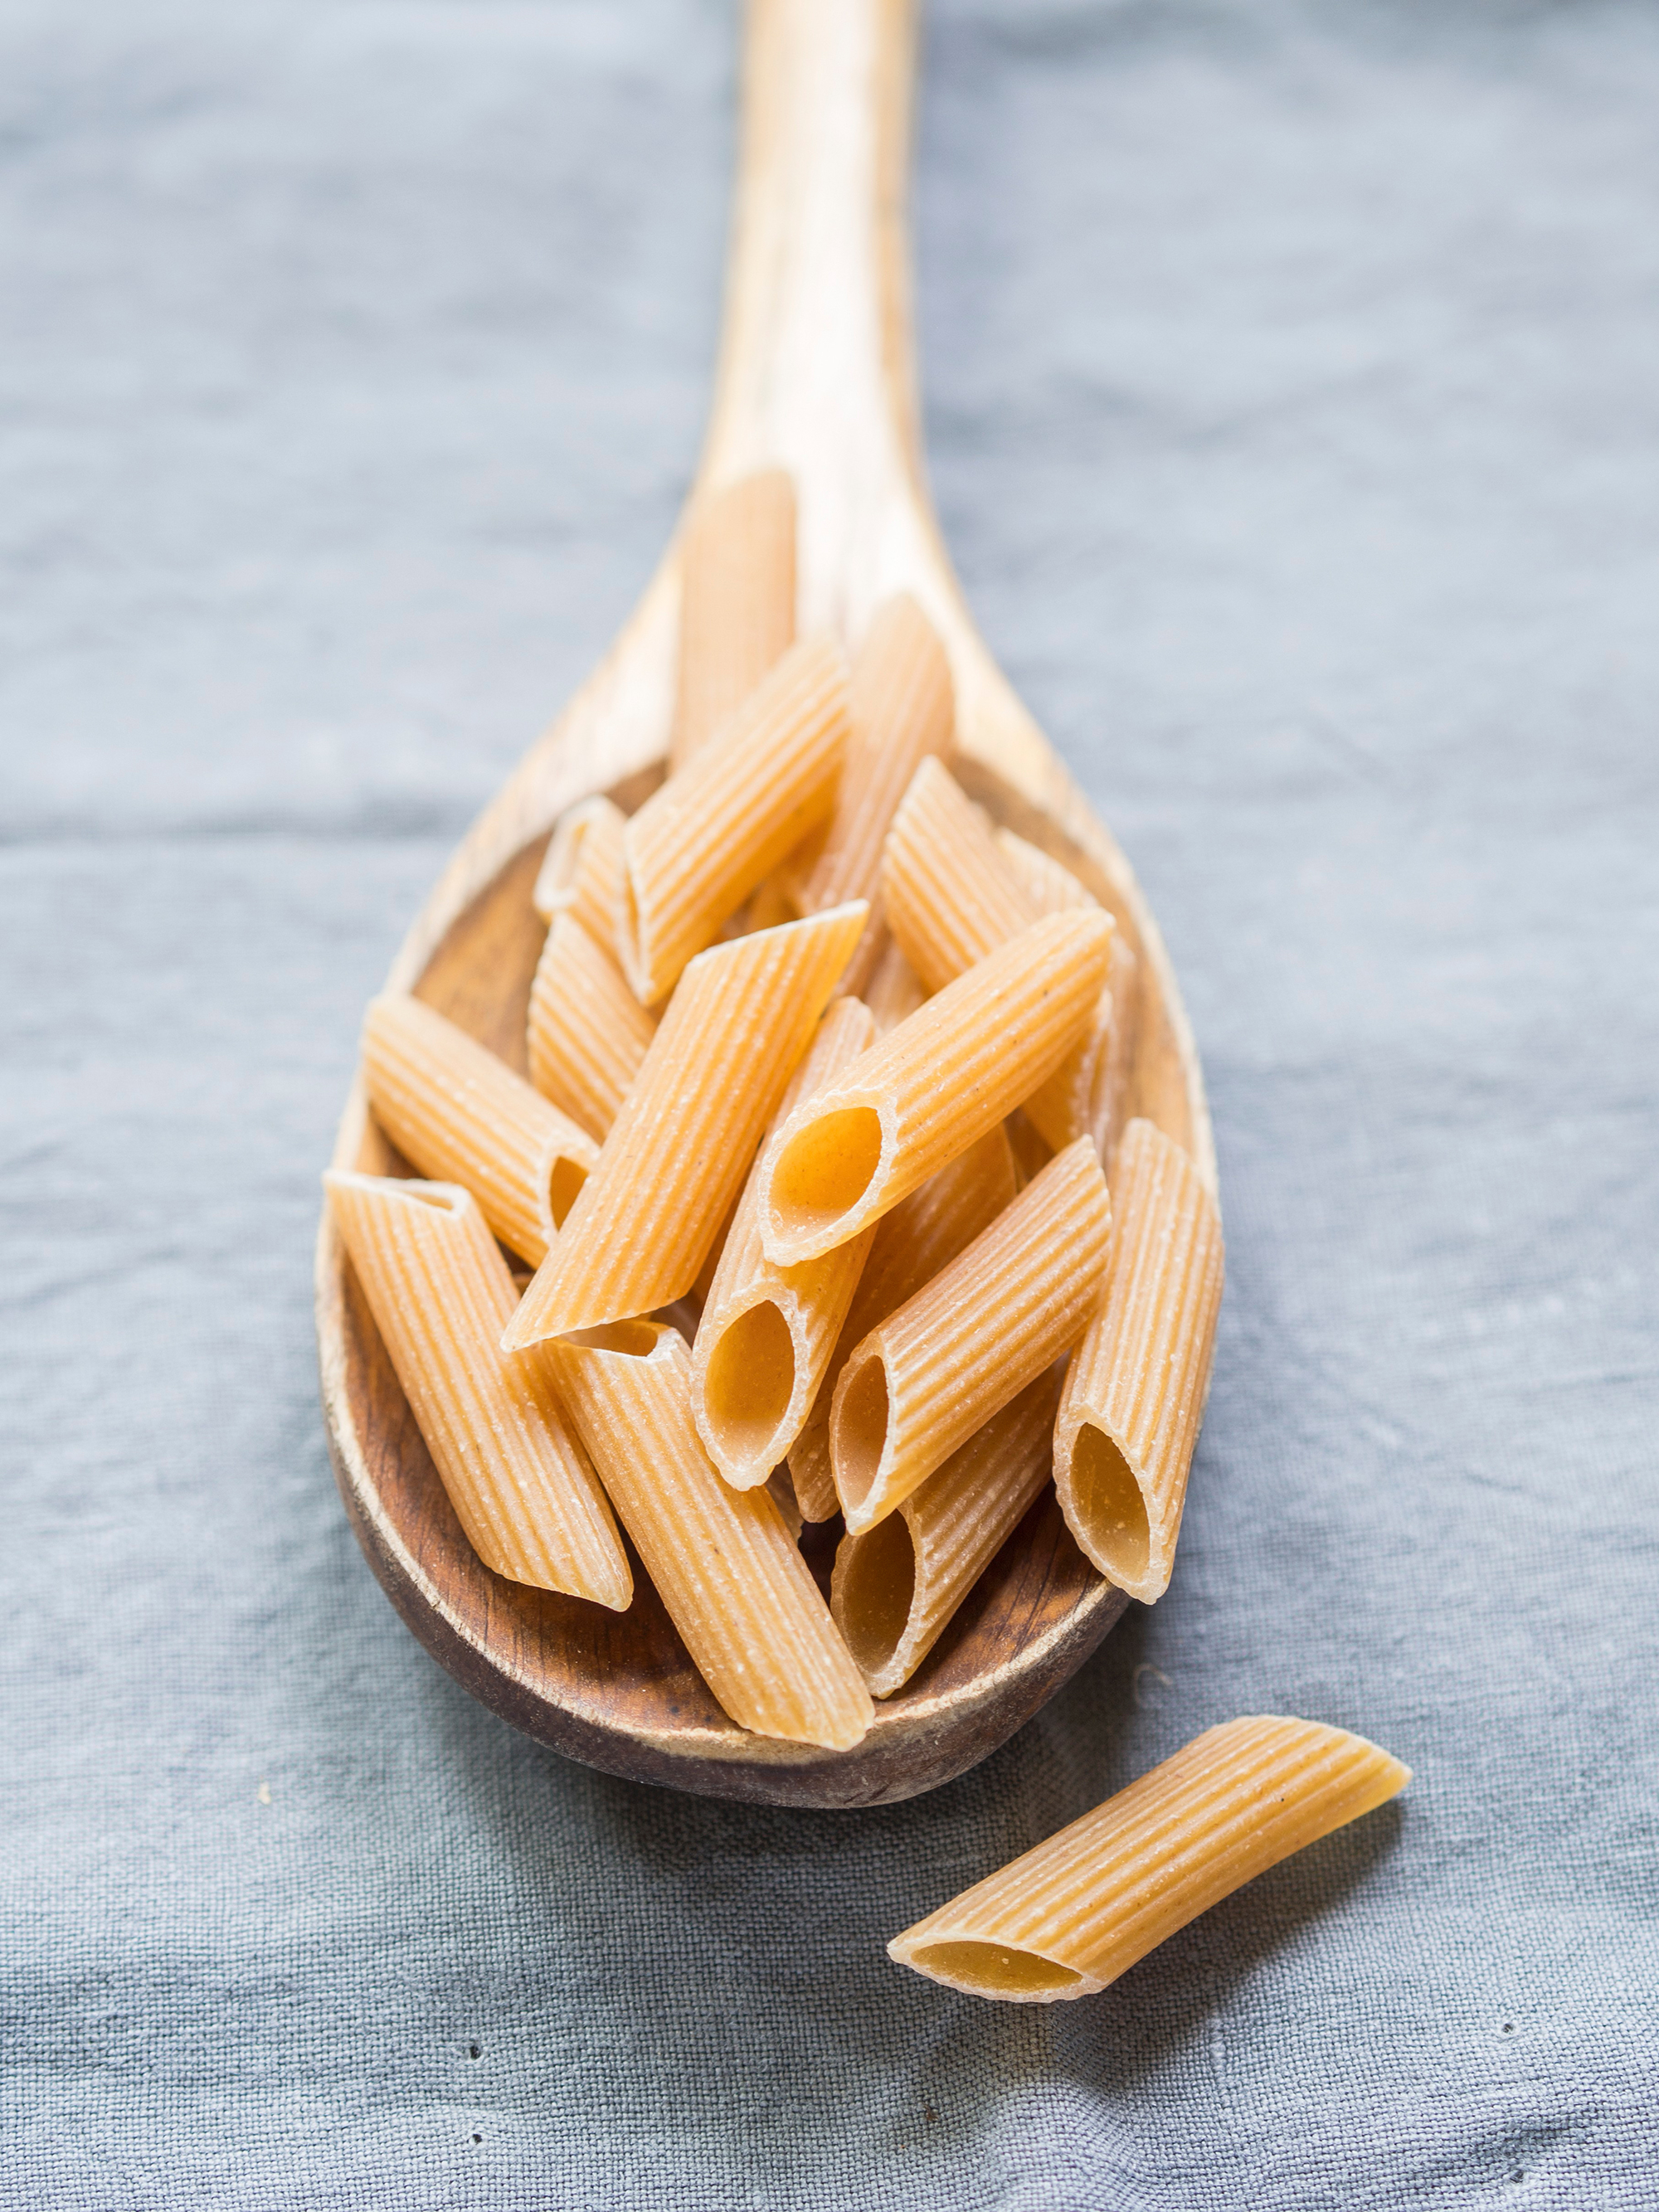 Whole Wheat Pasta in a Spoon